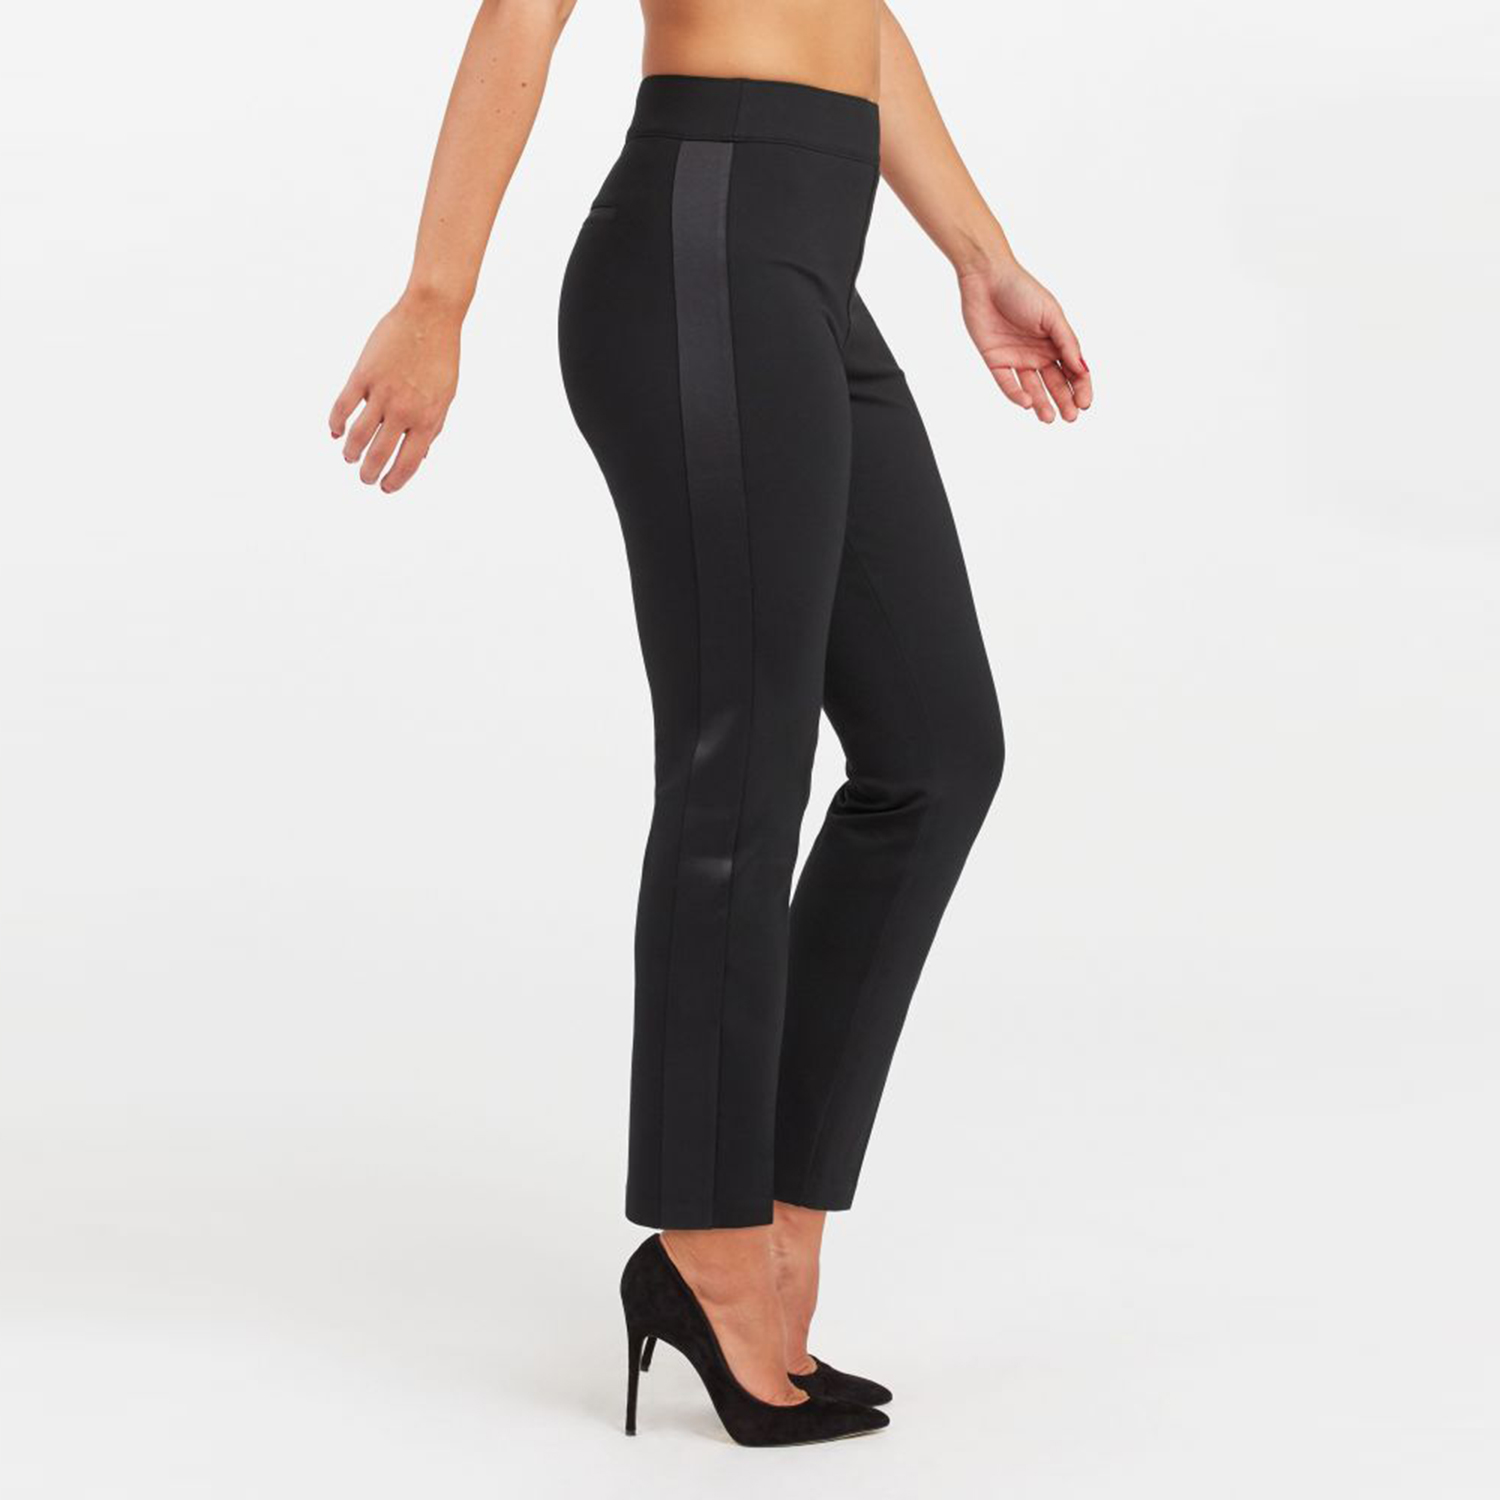 Spanx Underwear Are Majorly Discounted